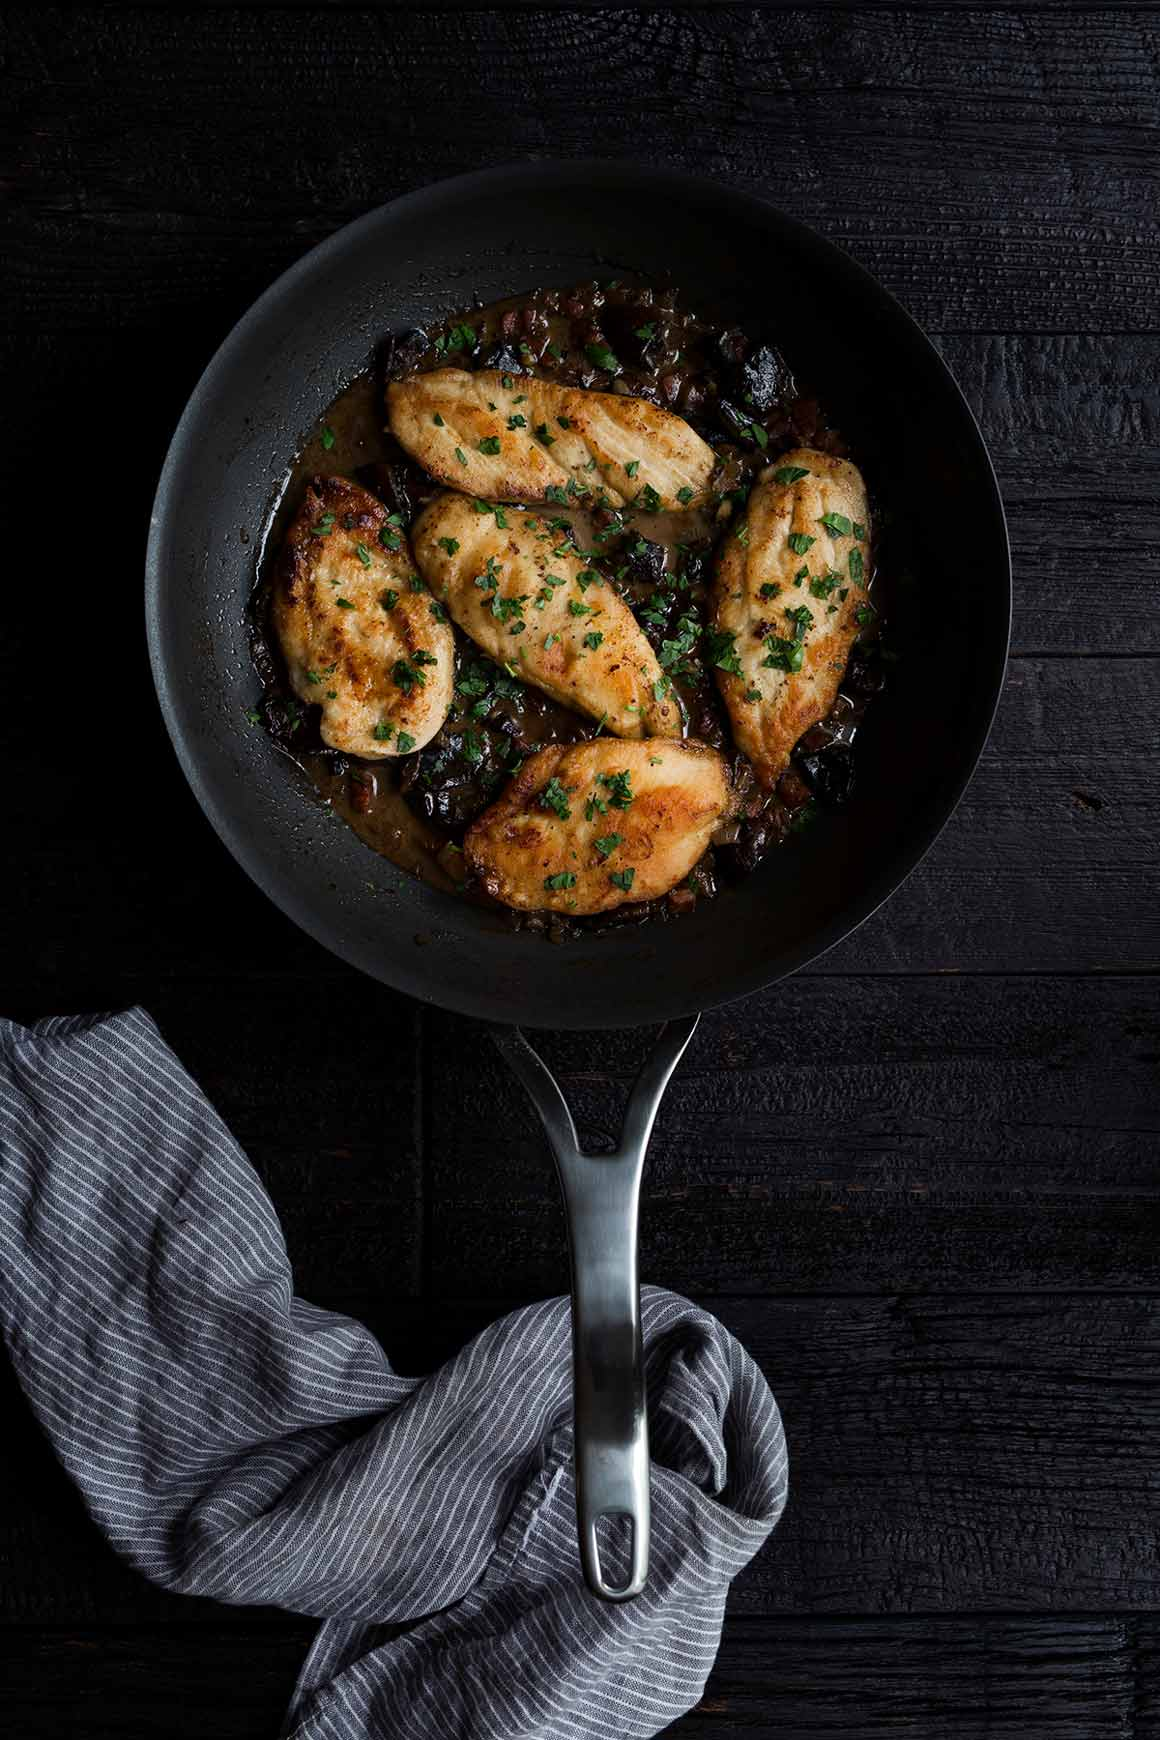 Chicken Marsala in a large nonstick skillet, topped with fresh parsley.